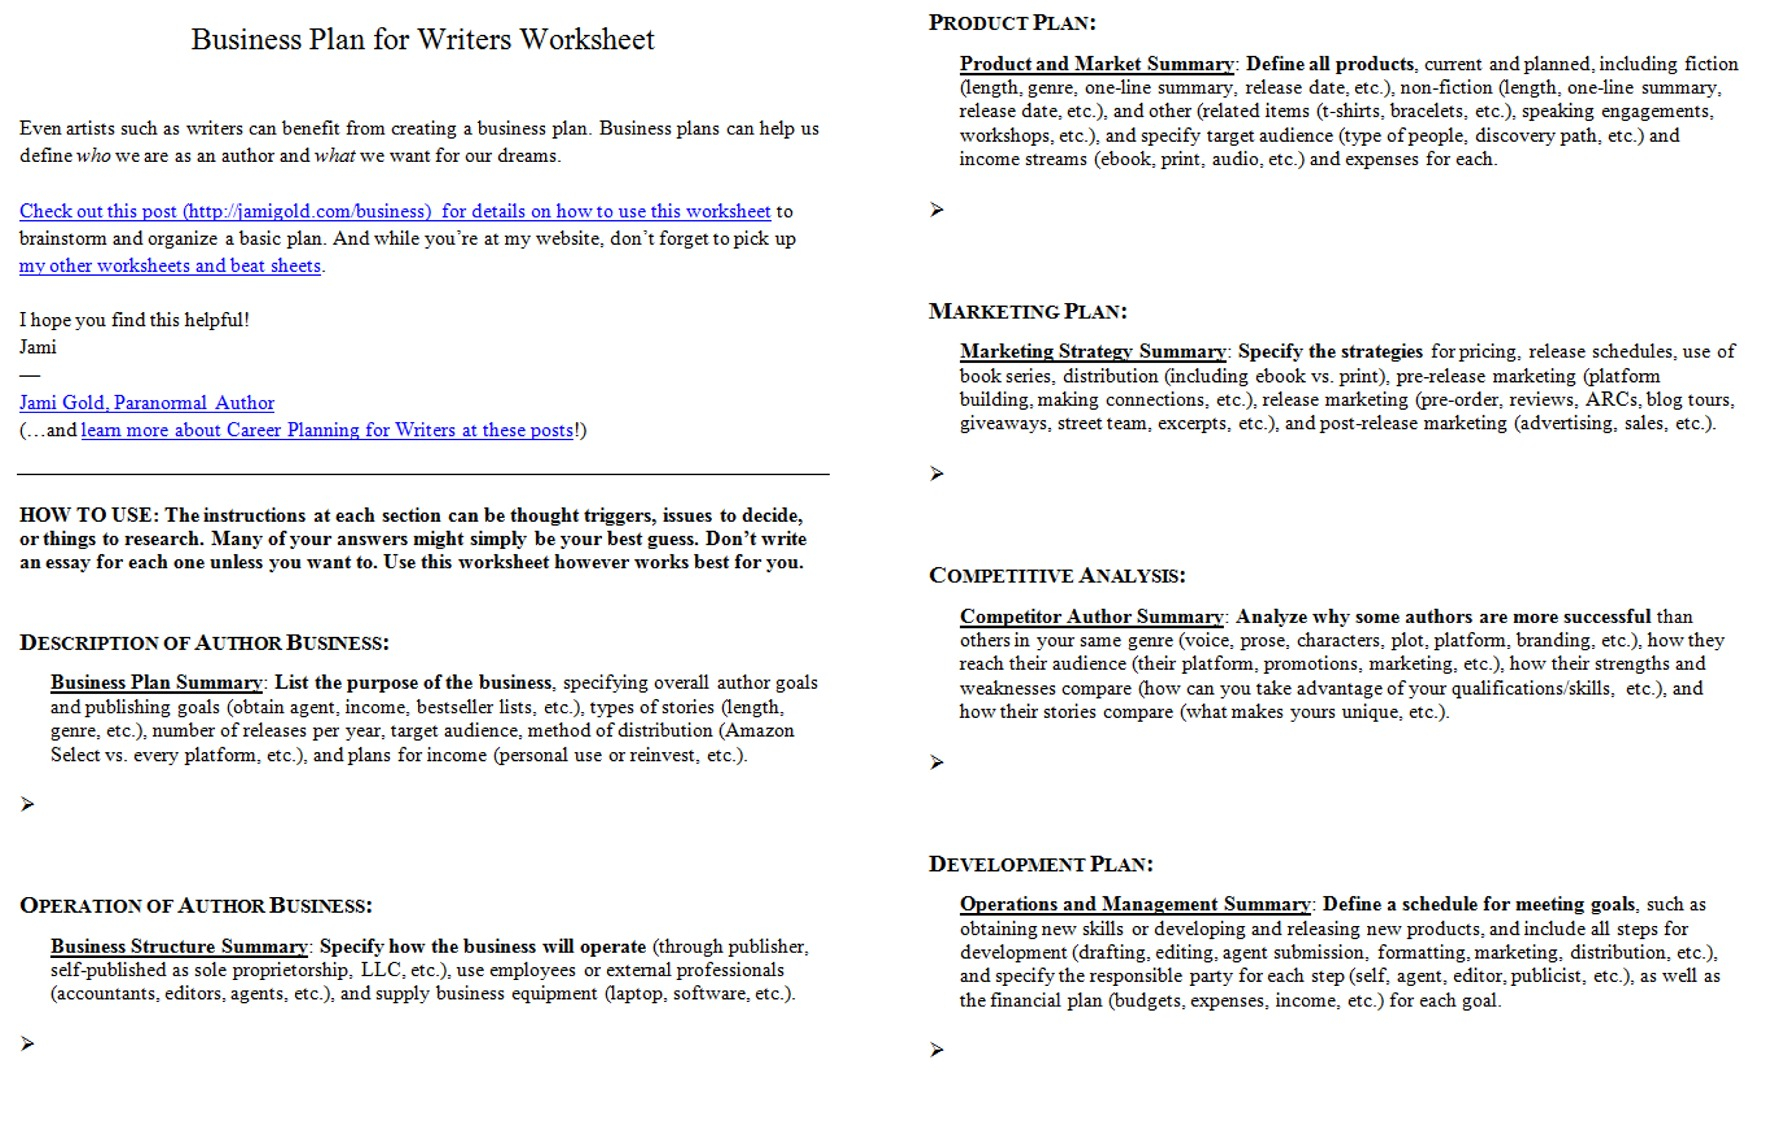 Proatmealus  Mesmerizing Worksheets For Writers  Jami Gold Paranormal Author With Interesting Screen Shot Of Both Pages Of The Business Plan For Writers Worksheet With Appealing Q Worksheets For Kindergarten Also Math Worksheets On Order Of Operations In Addition Worksheets On Pythagoras Theorem And Science Worksheets For Grade  As Well As Year  Grammar Worksheets Additionally Visual Subtraction Worksheets From Jamigoldcom With Proatmealus  Interesting Worksheets For Writers  Jami Gold Paranormal Author With Appealing Screen Shot Of Both Pages Of The Business Plan For Writers Worksheet And Mesmerizing Q Worksheets For Kindergarten Also Math Worksheets On Order Of Operations In Addition Worksheets On Pythagoras Theorem From Jamigoldcom